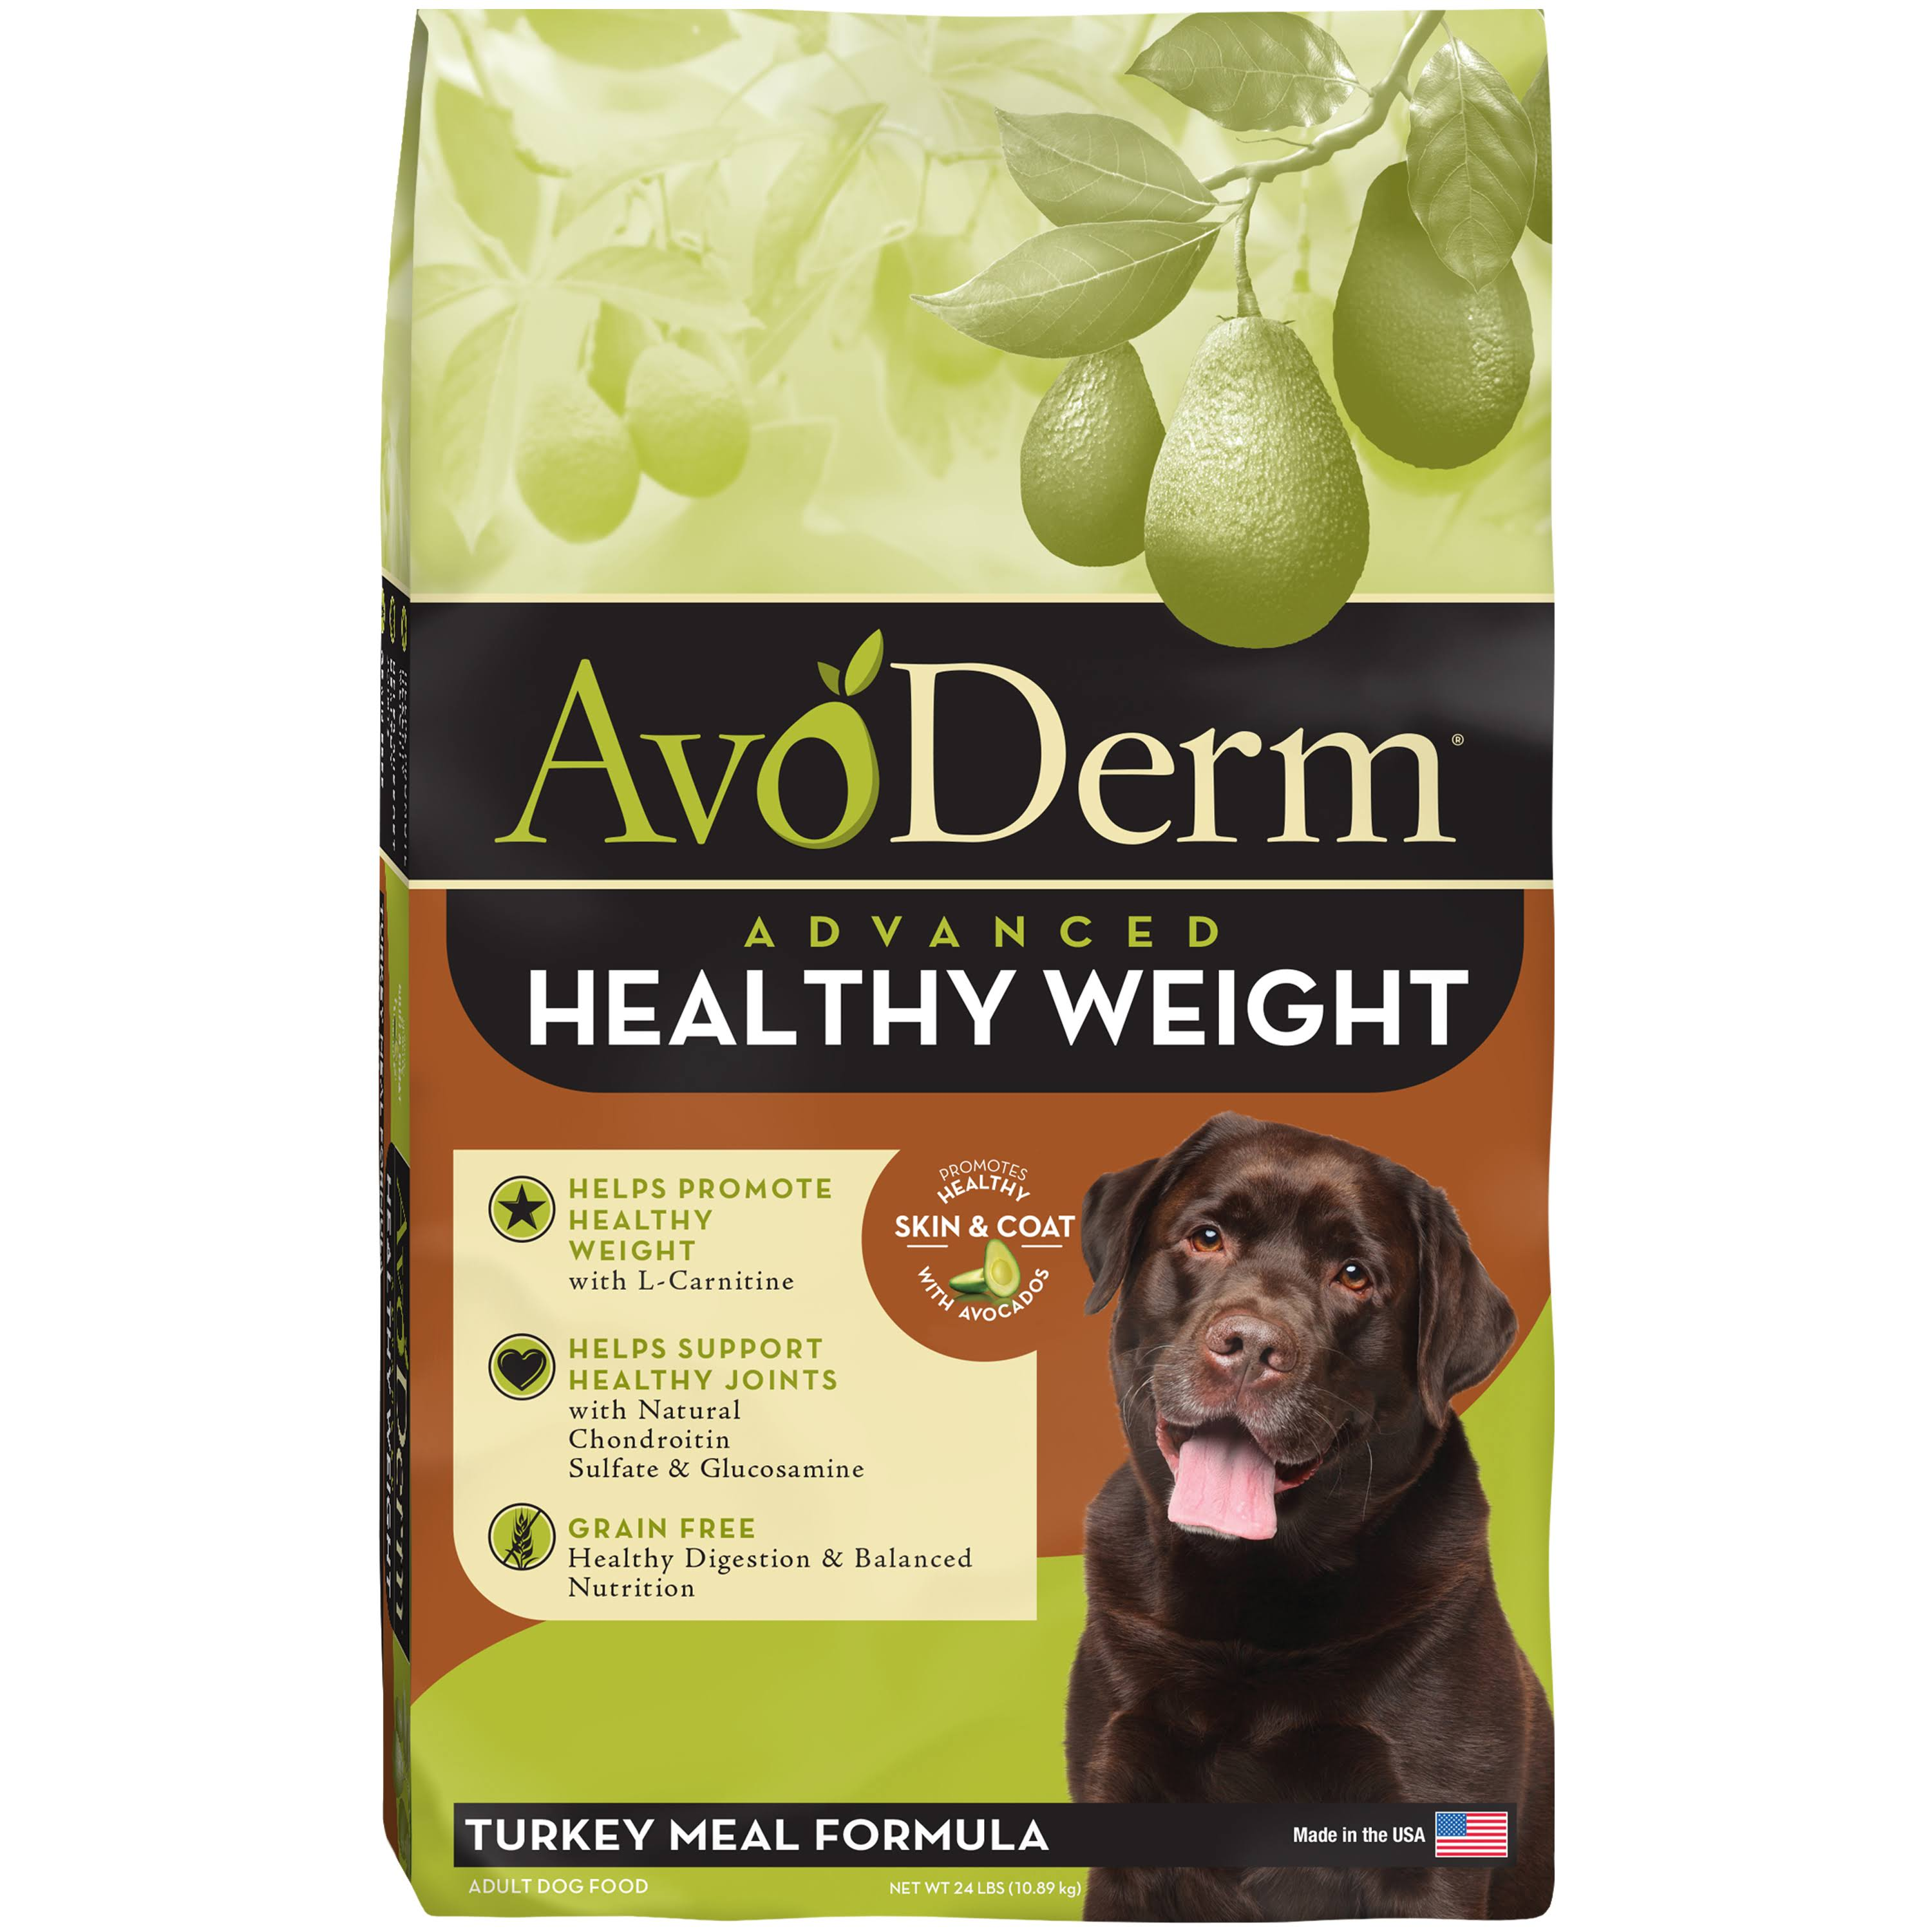 AvoDerm Grain Free Advanced Healthy Weight Turkey Meal Recipe Dry Dog Food - 4-lb